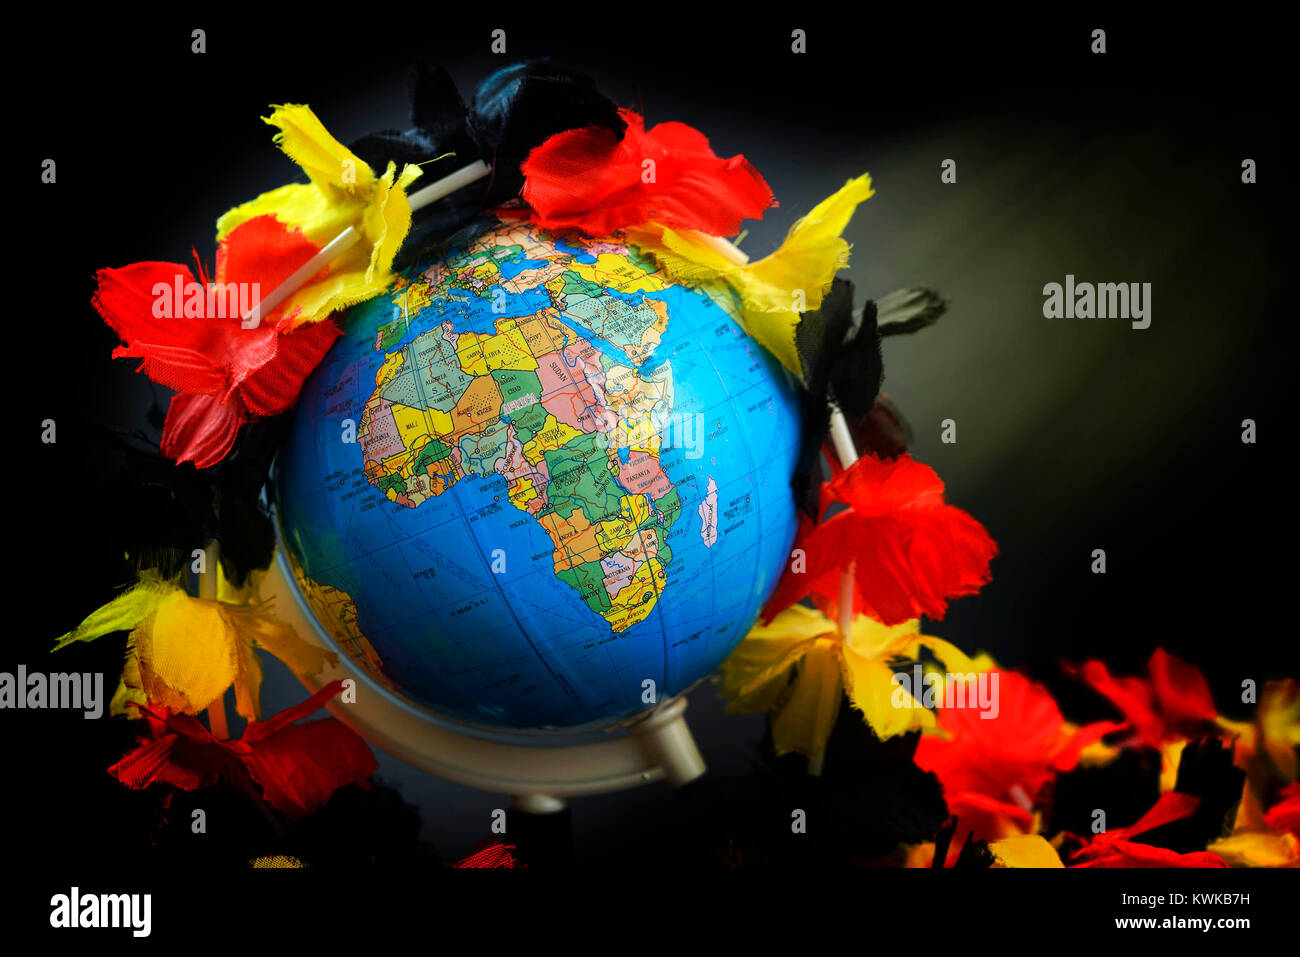 Globe with flower chain in German national colours, symbolic photo refugee's stream to Germany, Globus mit Blumenkette - Stock Image